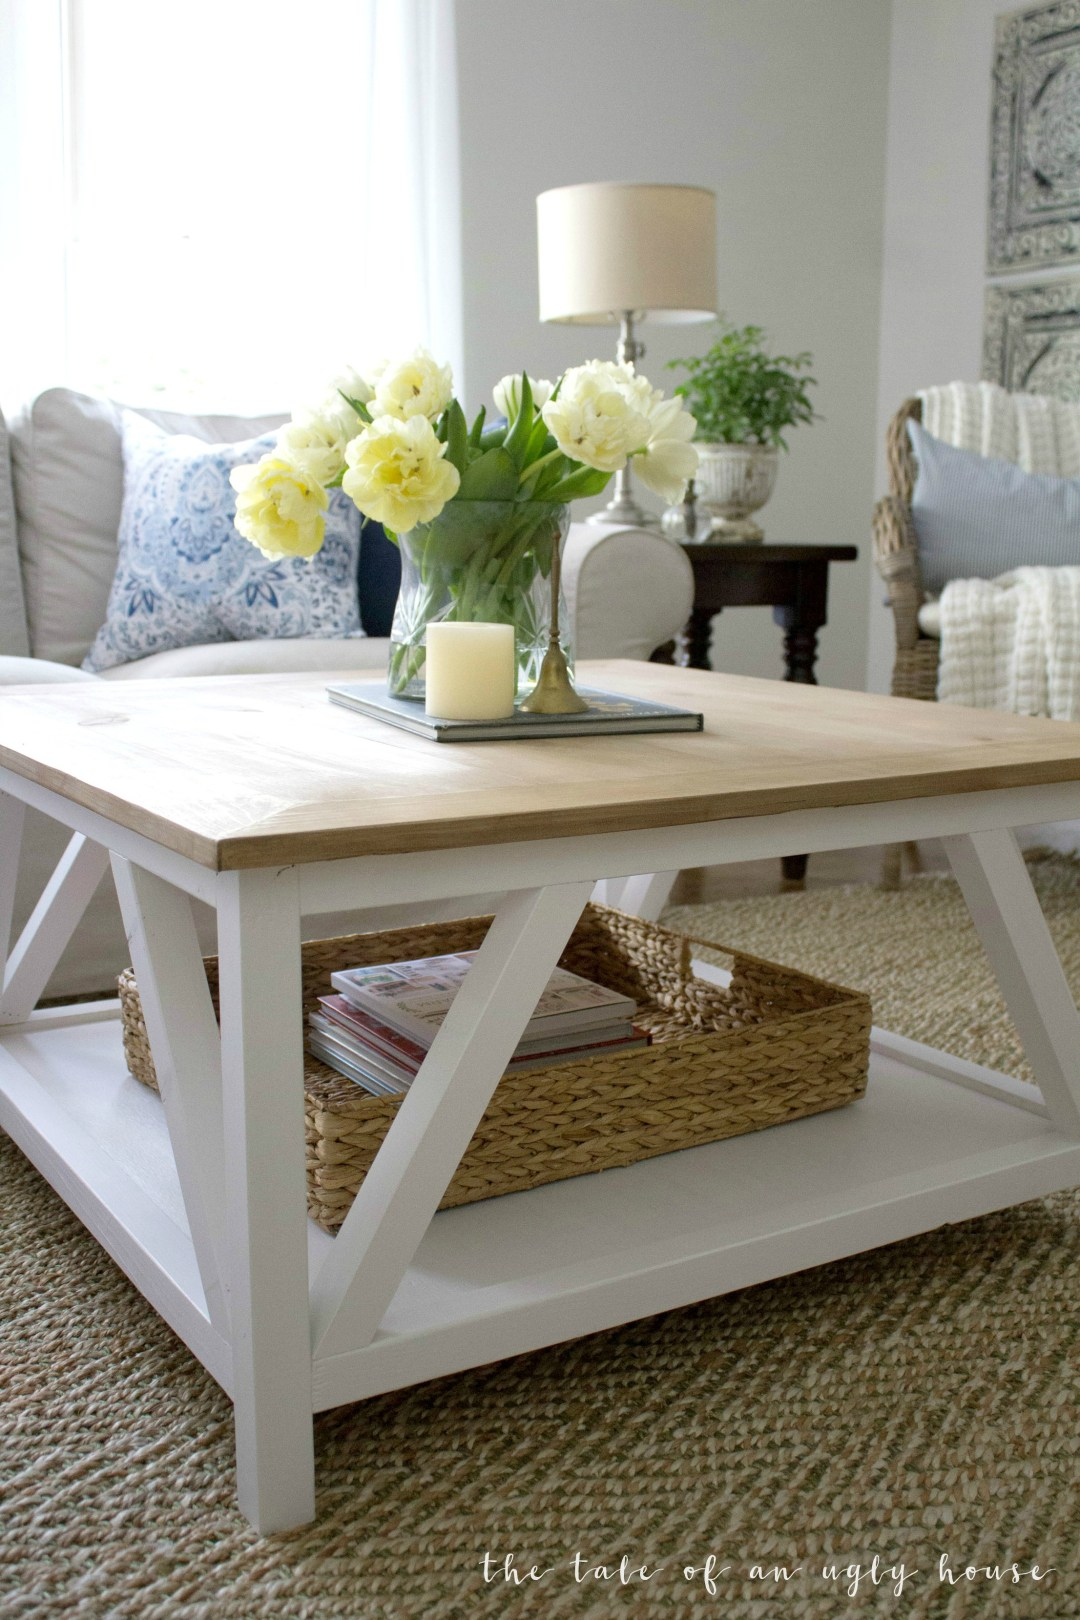 Diy modern farmhouse coffee table sincerely marie designs for Modern end table ideas